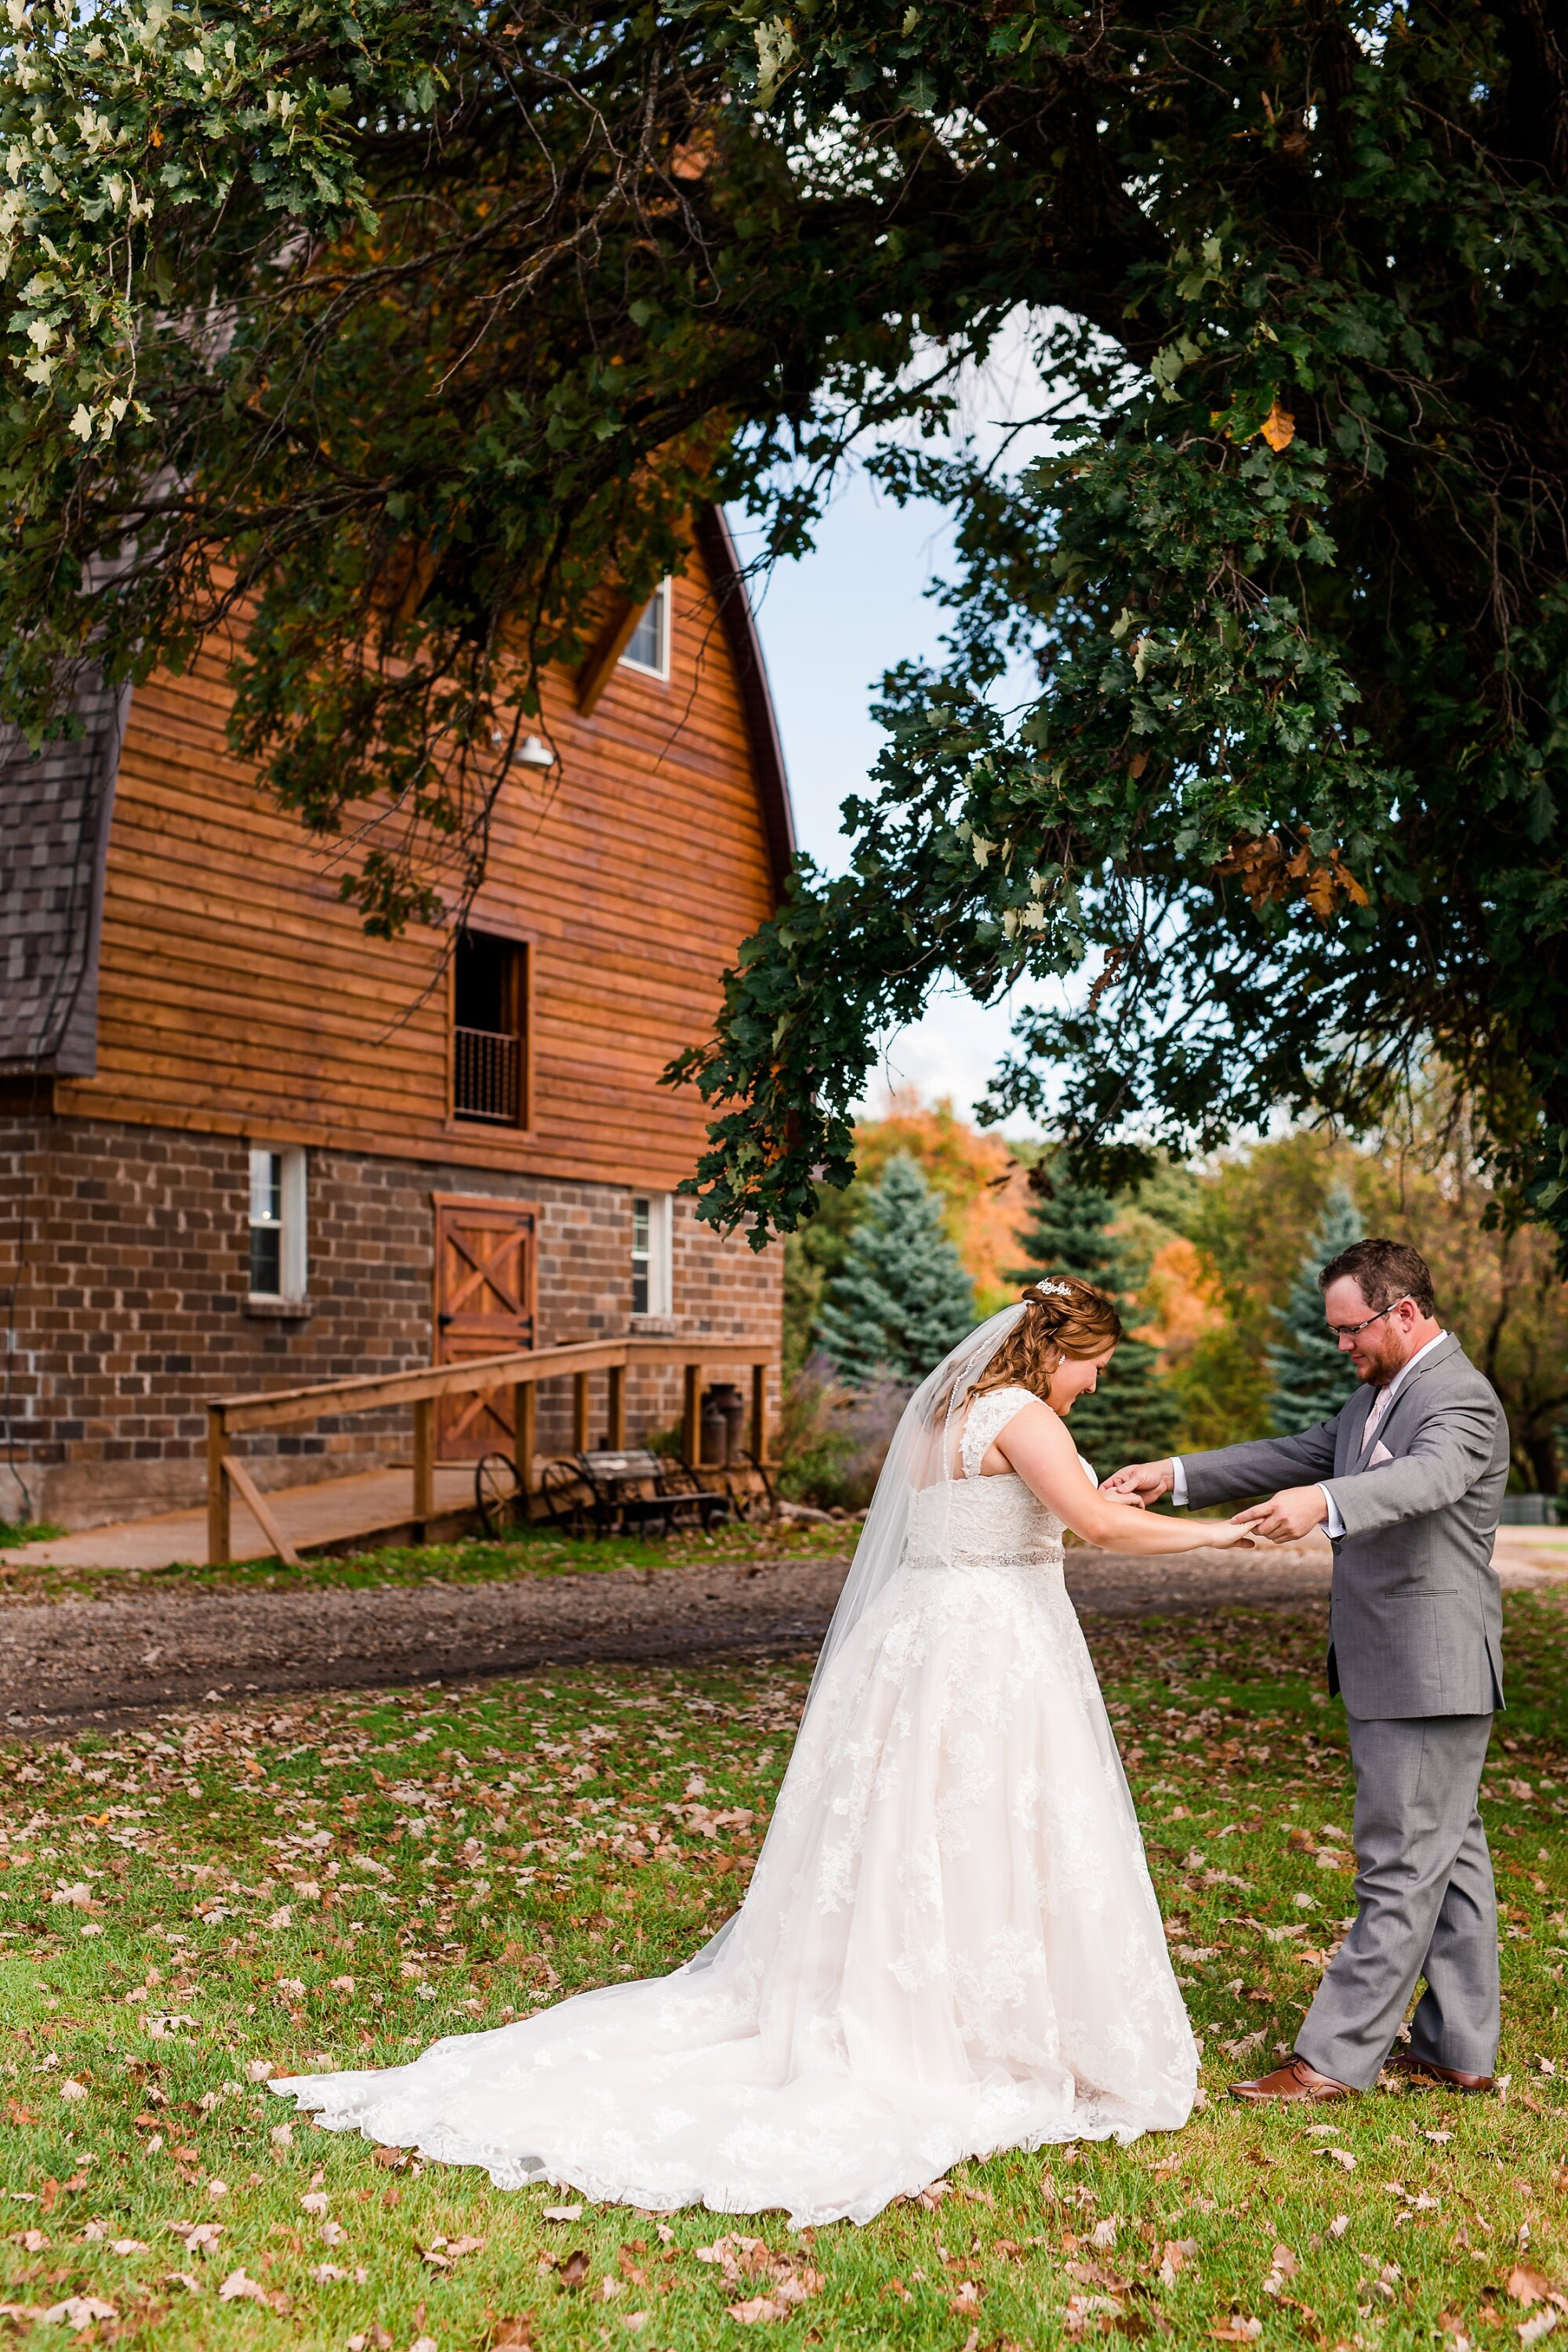 Amber Langerud Photography_Lake Park Minnesota, Outdoor Barn Wedding With Horses_6958.jpg